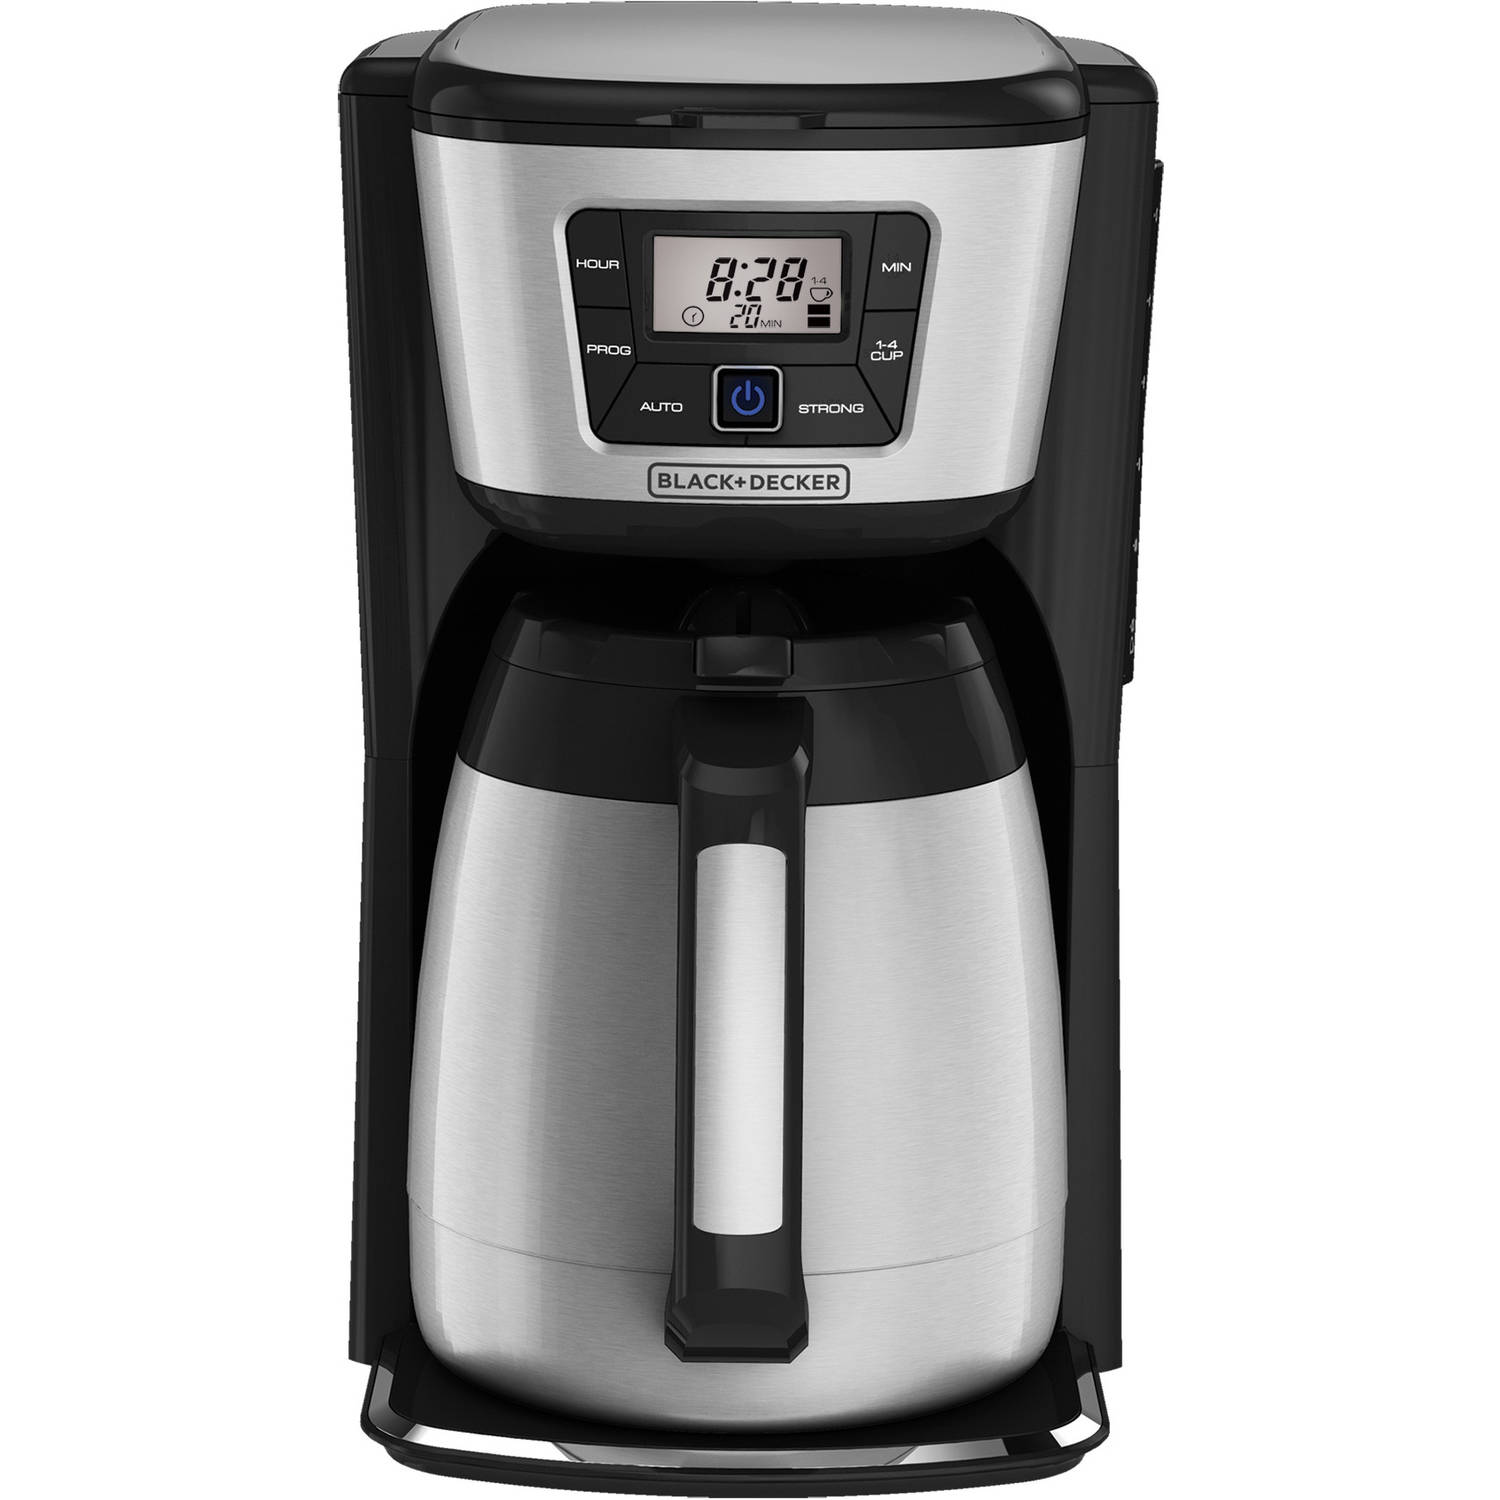 Black & Decker 12-Cup Programmable Coffee Maker with Thermal Carafe